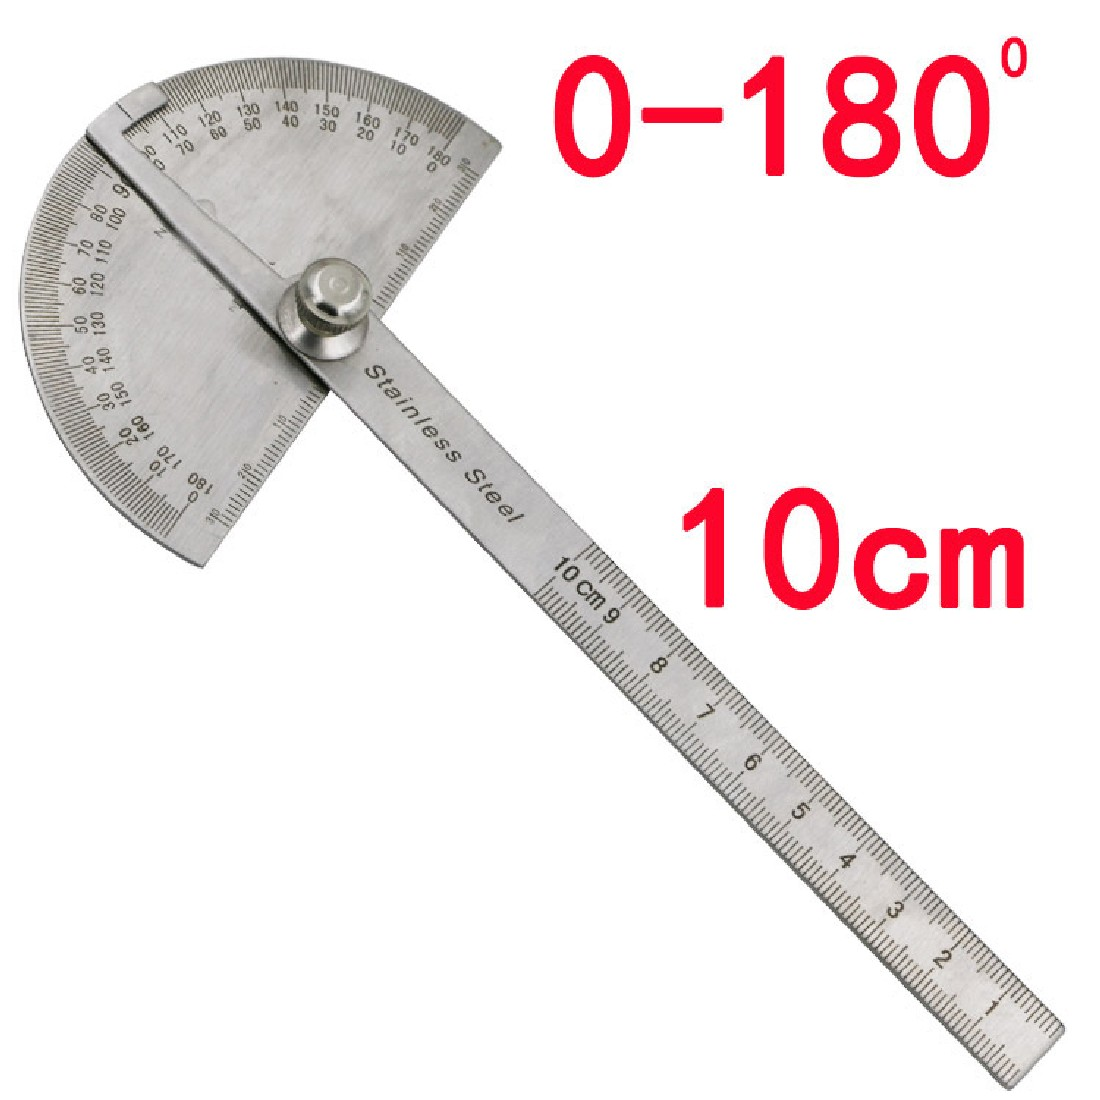 New Stainless Steel 180 degree Protractor Angle Finder Rotary Measuring Ruler For Woodworking Tools for Measuring Angles